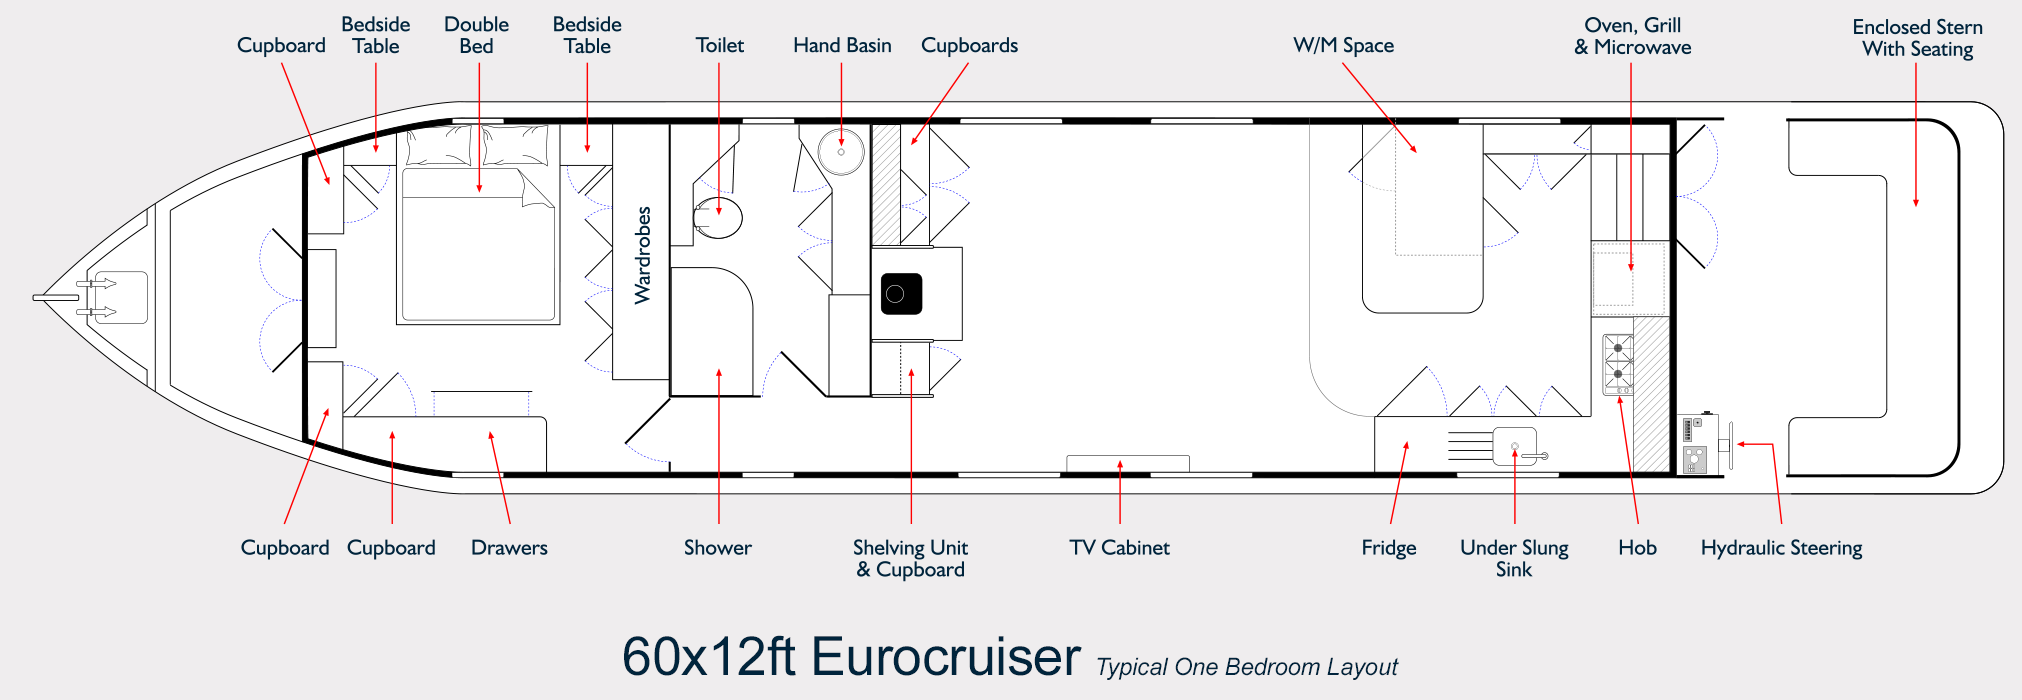 Widebeam Builders Eurocruiser Layout Drawing 60ft x 12ft Reverse Layout